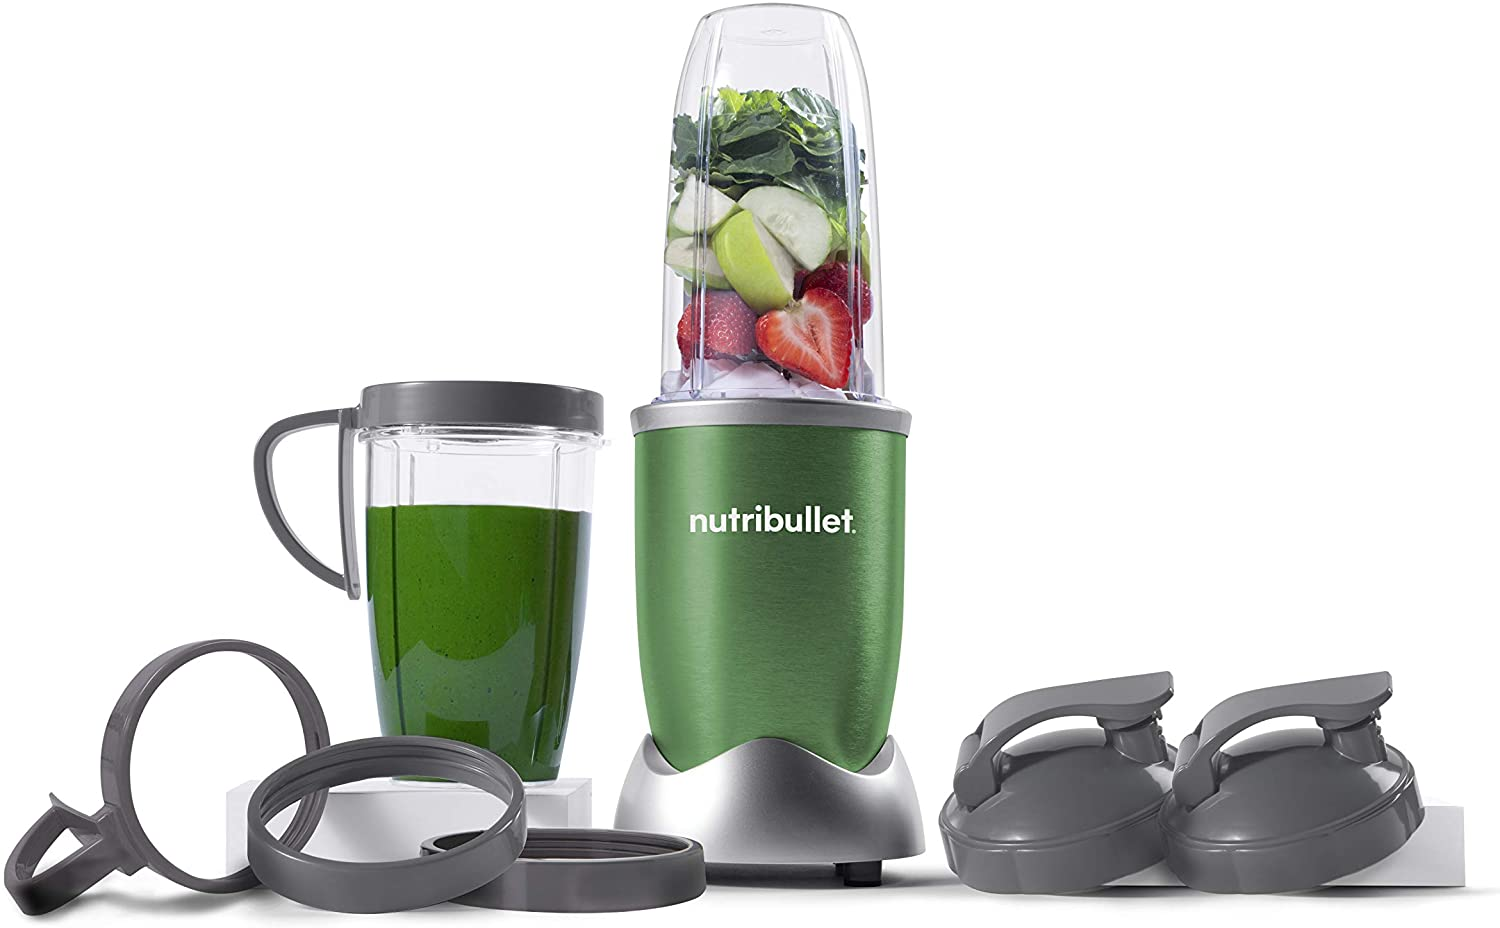 NutriBullet NB9-1301G Pro 13 Pcs Clover Green, 900W